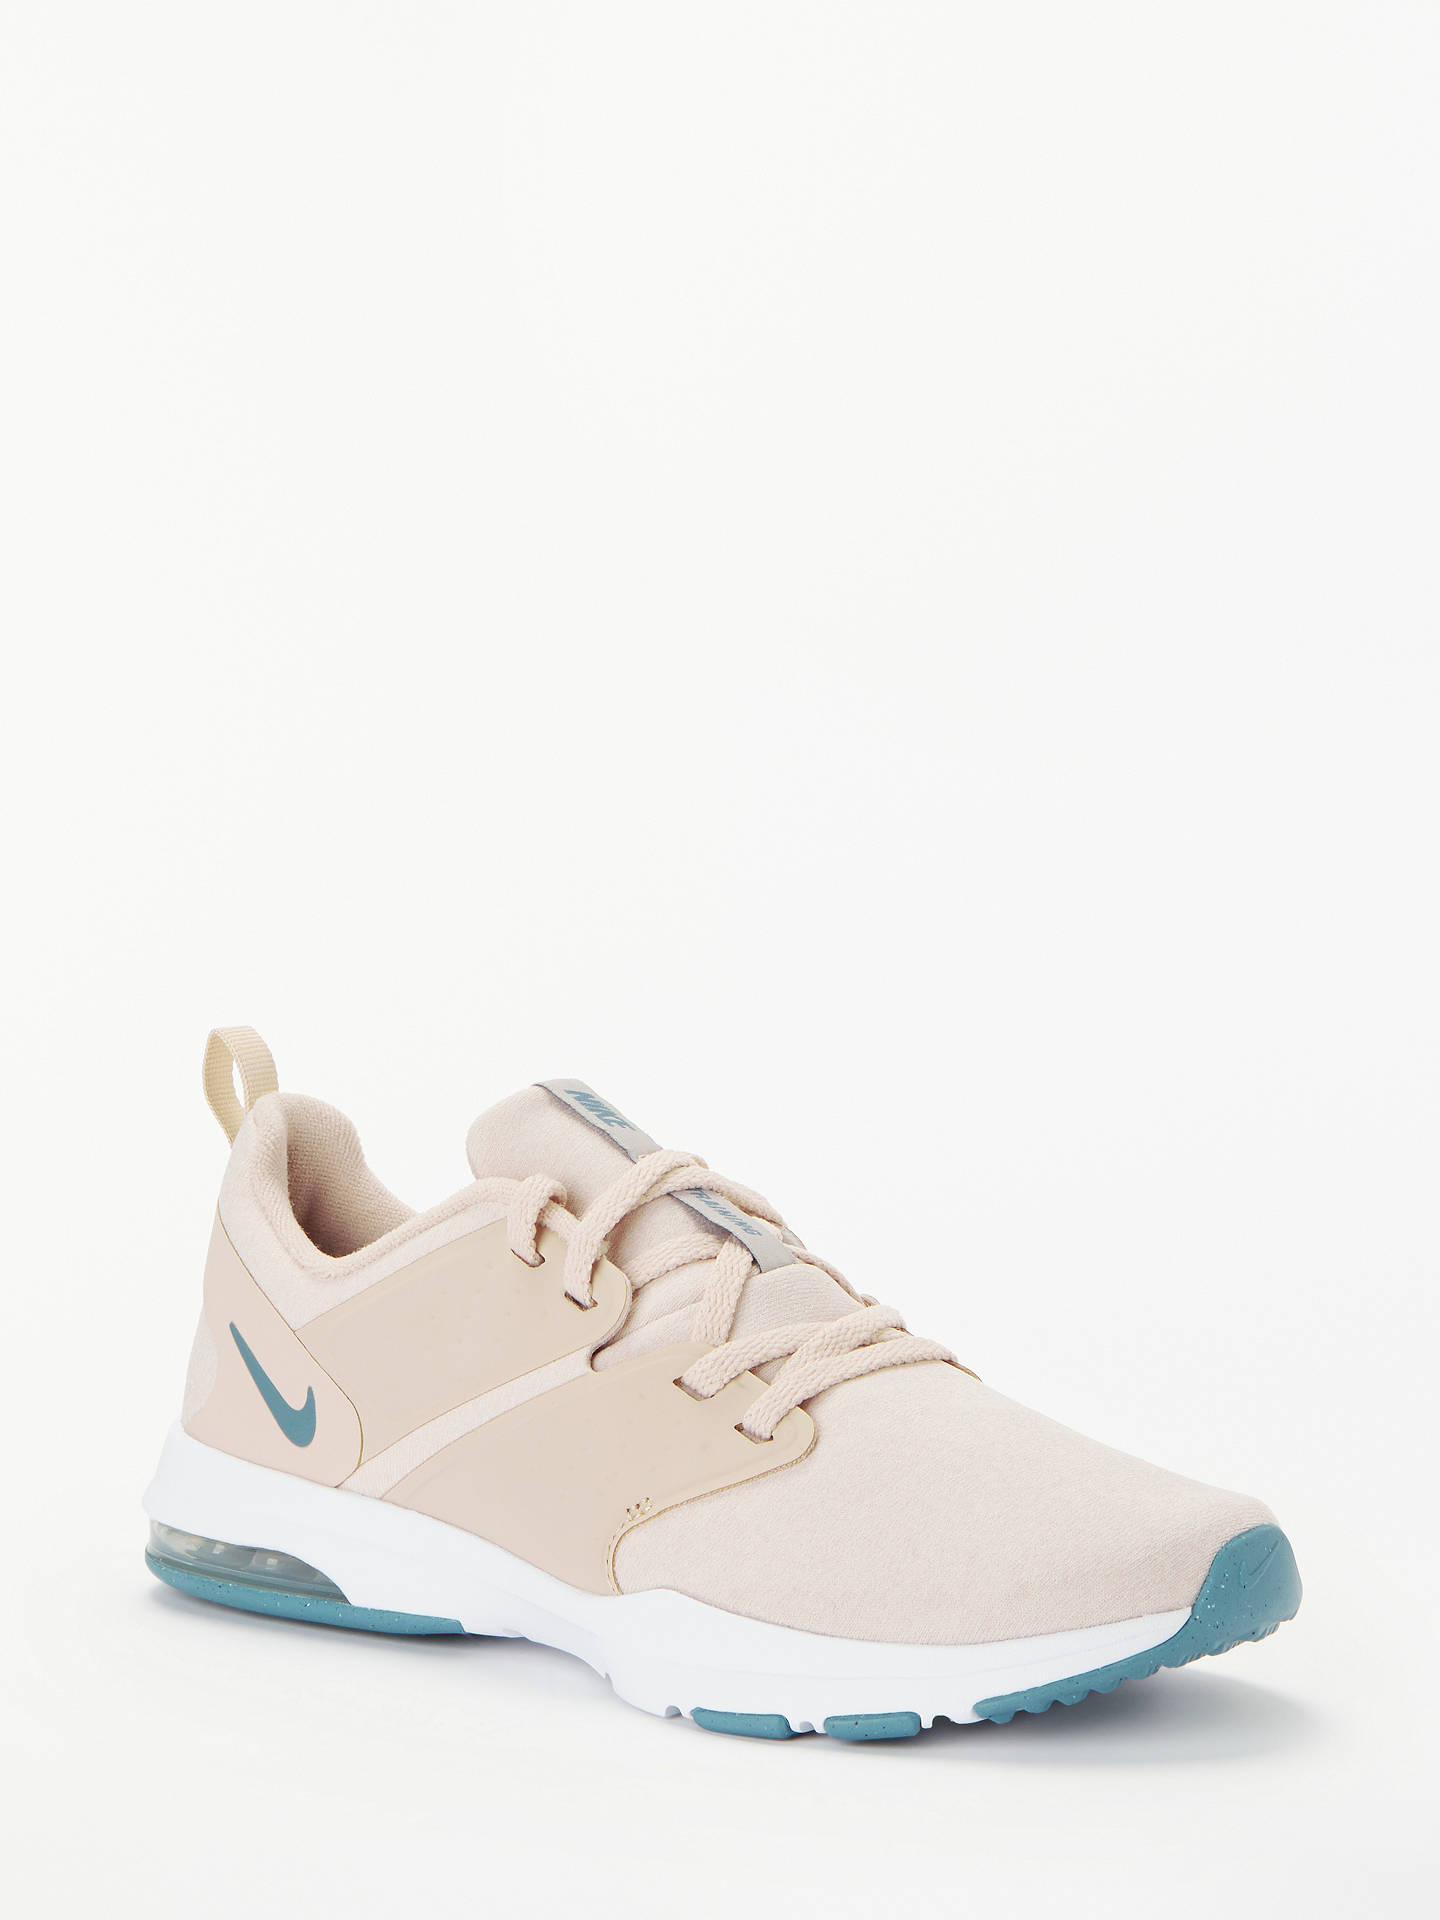 6cbe9fad4d11b ... Buy Nike Air Bella TR Women's Training Shoes, Particle Beige/Celestial  Teal/Guava ...